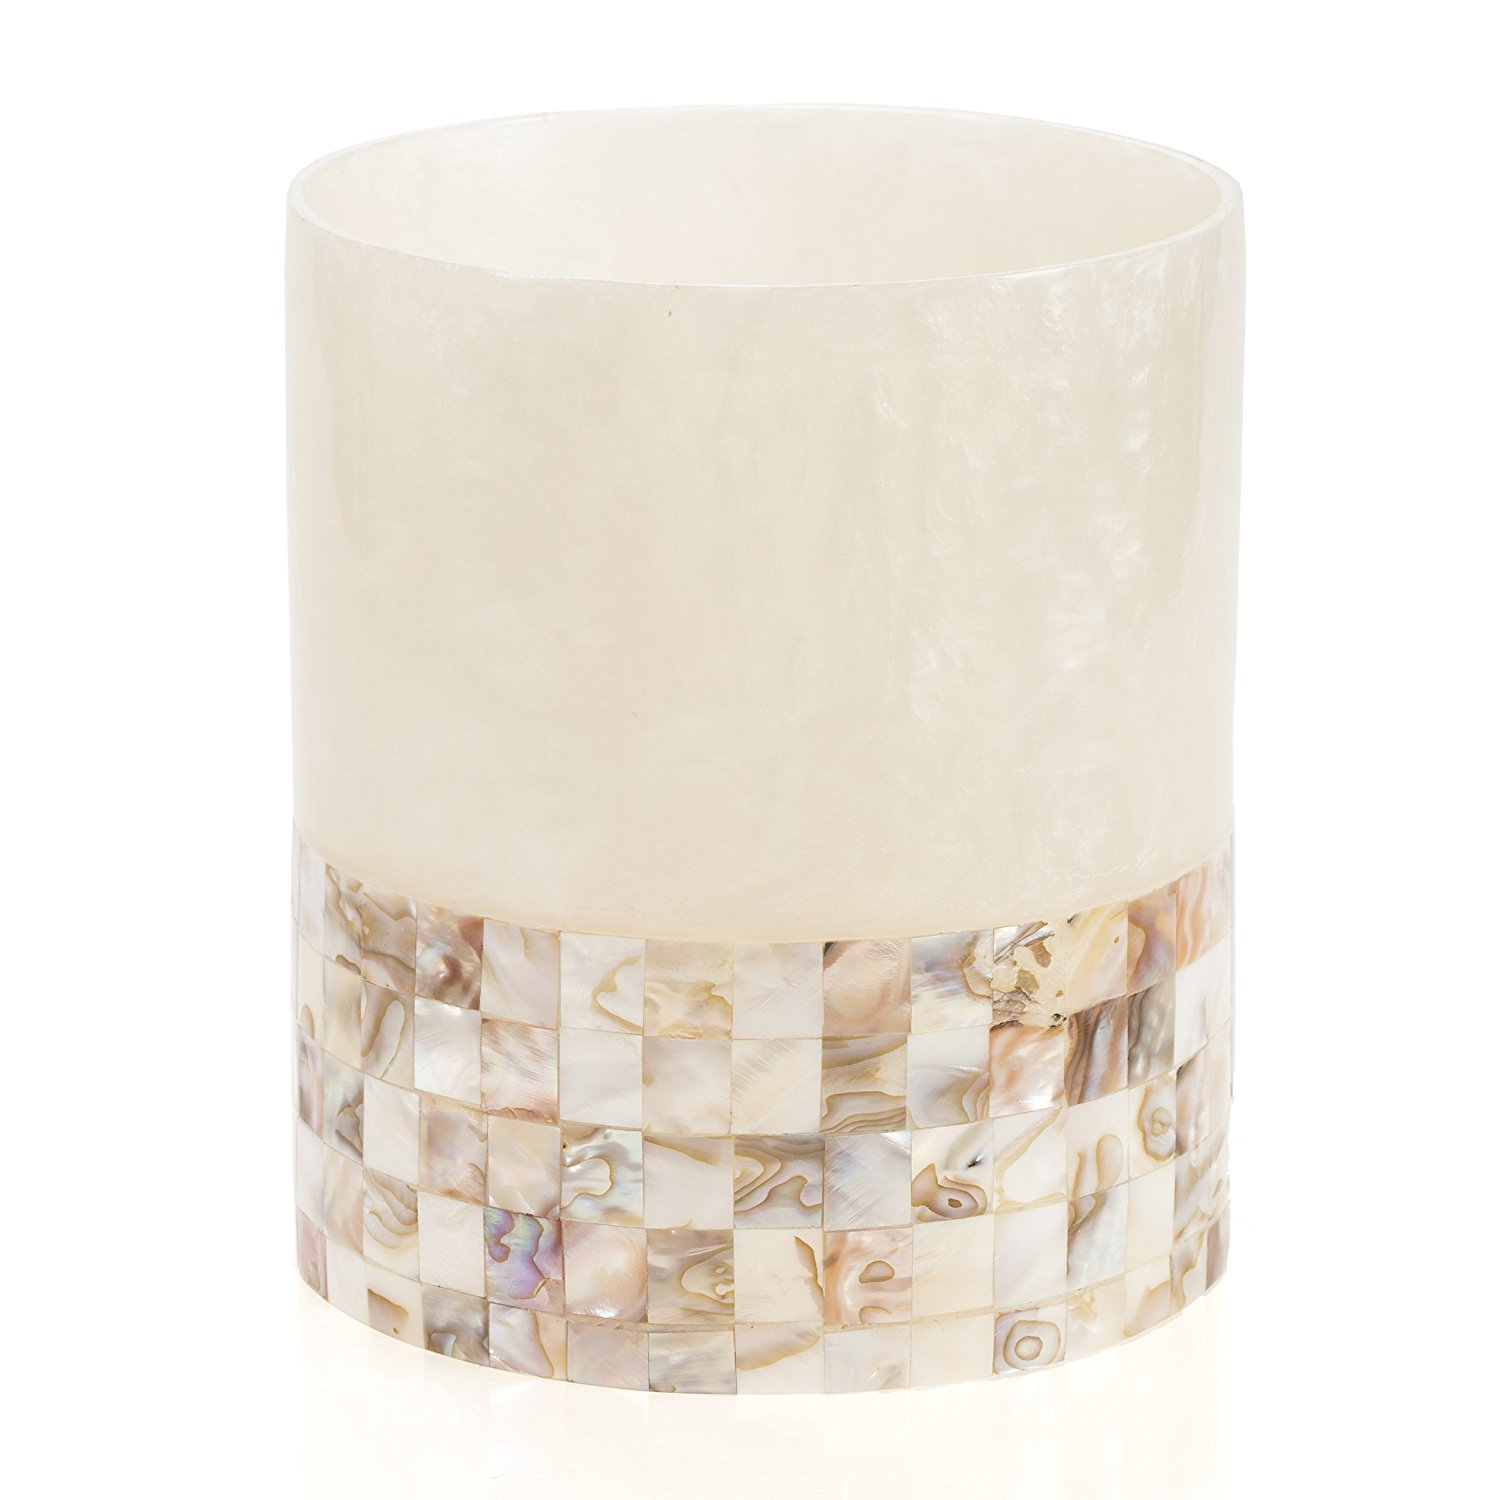 Creative Scents Milano Collection Wastebasket